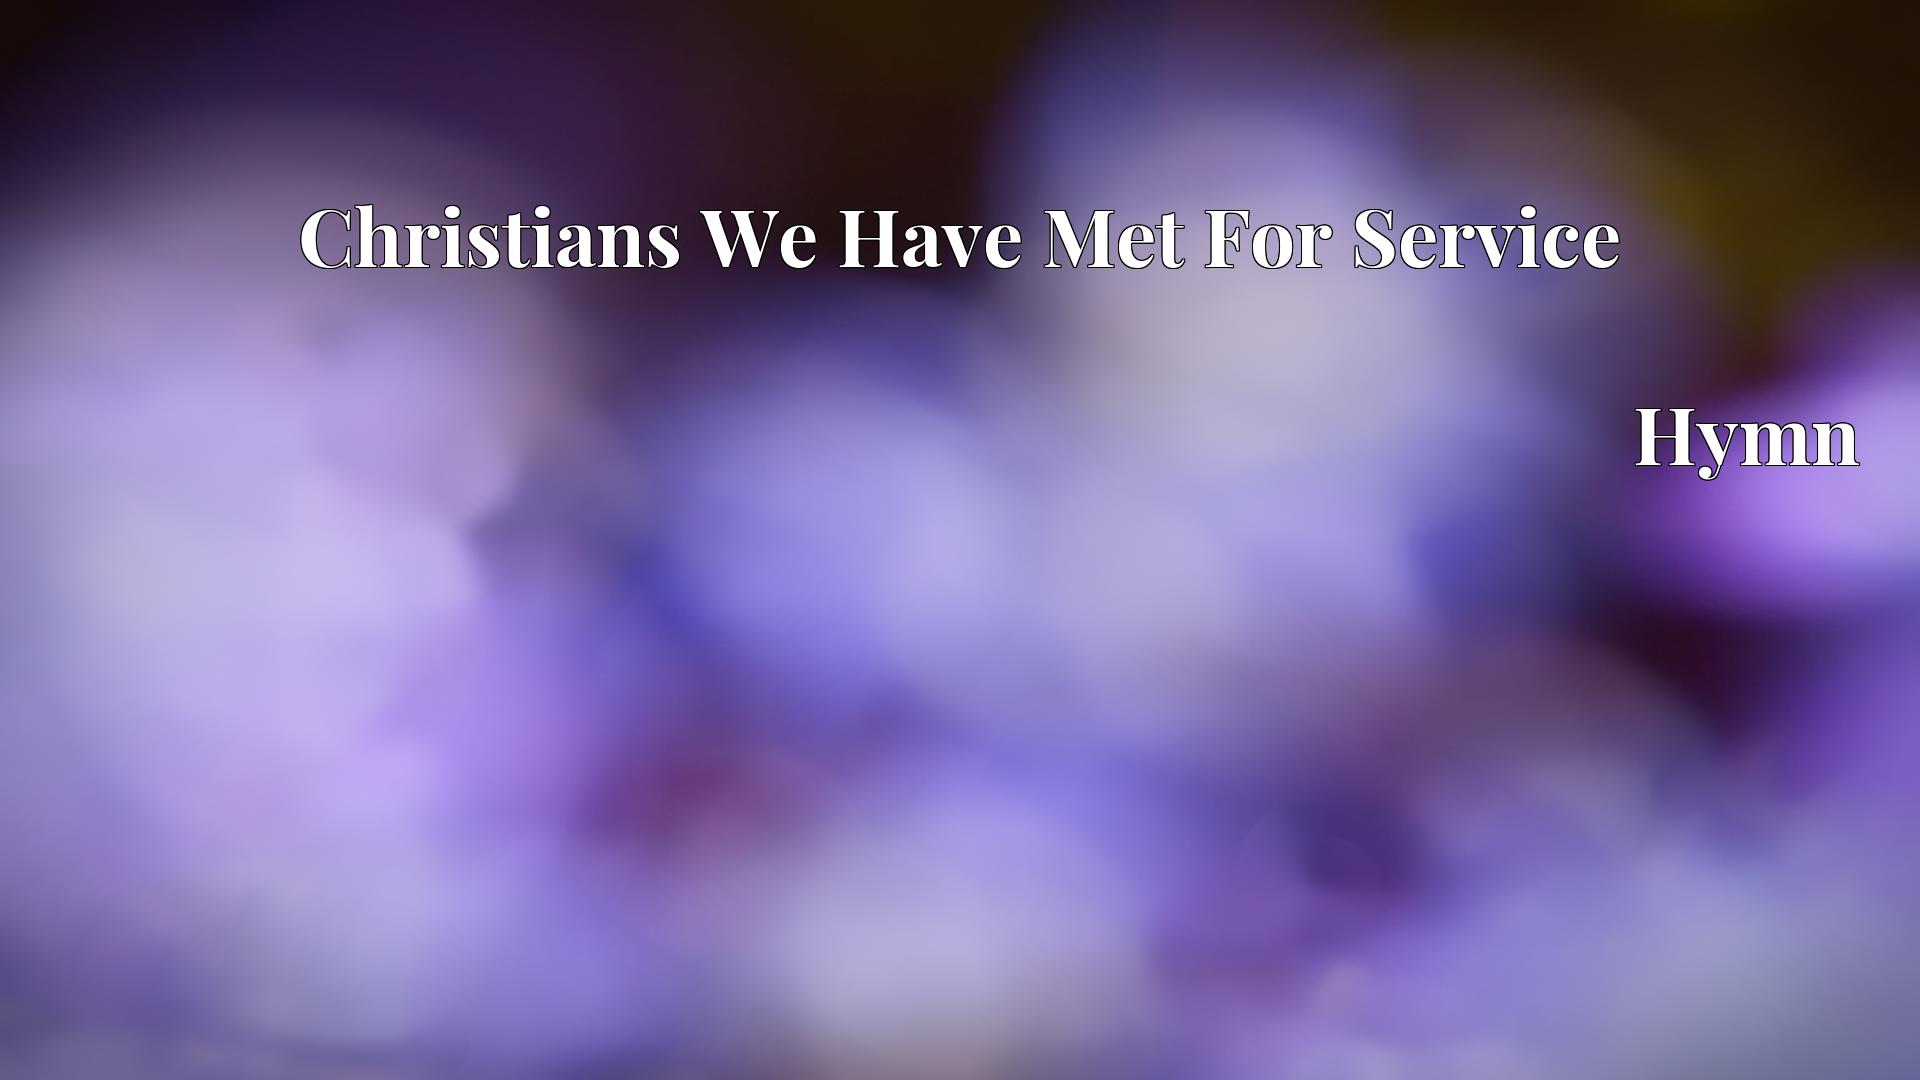 Christians We Have Met For Service - Hymn